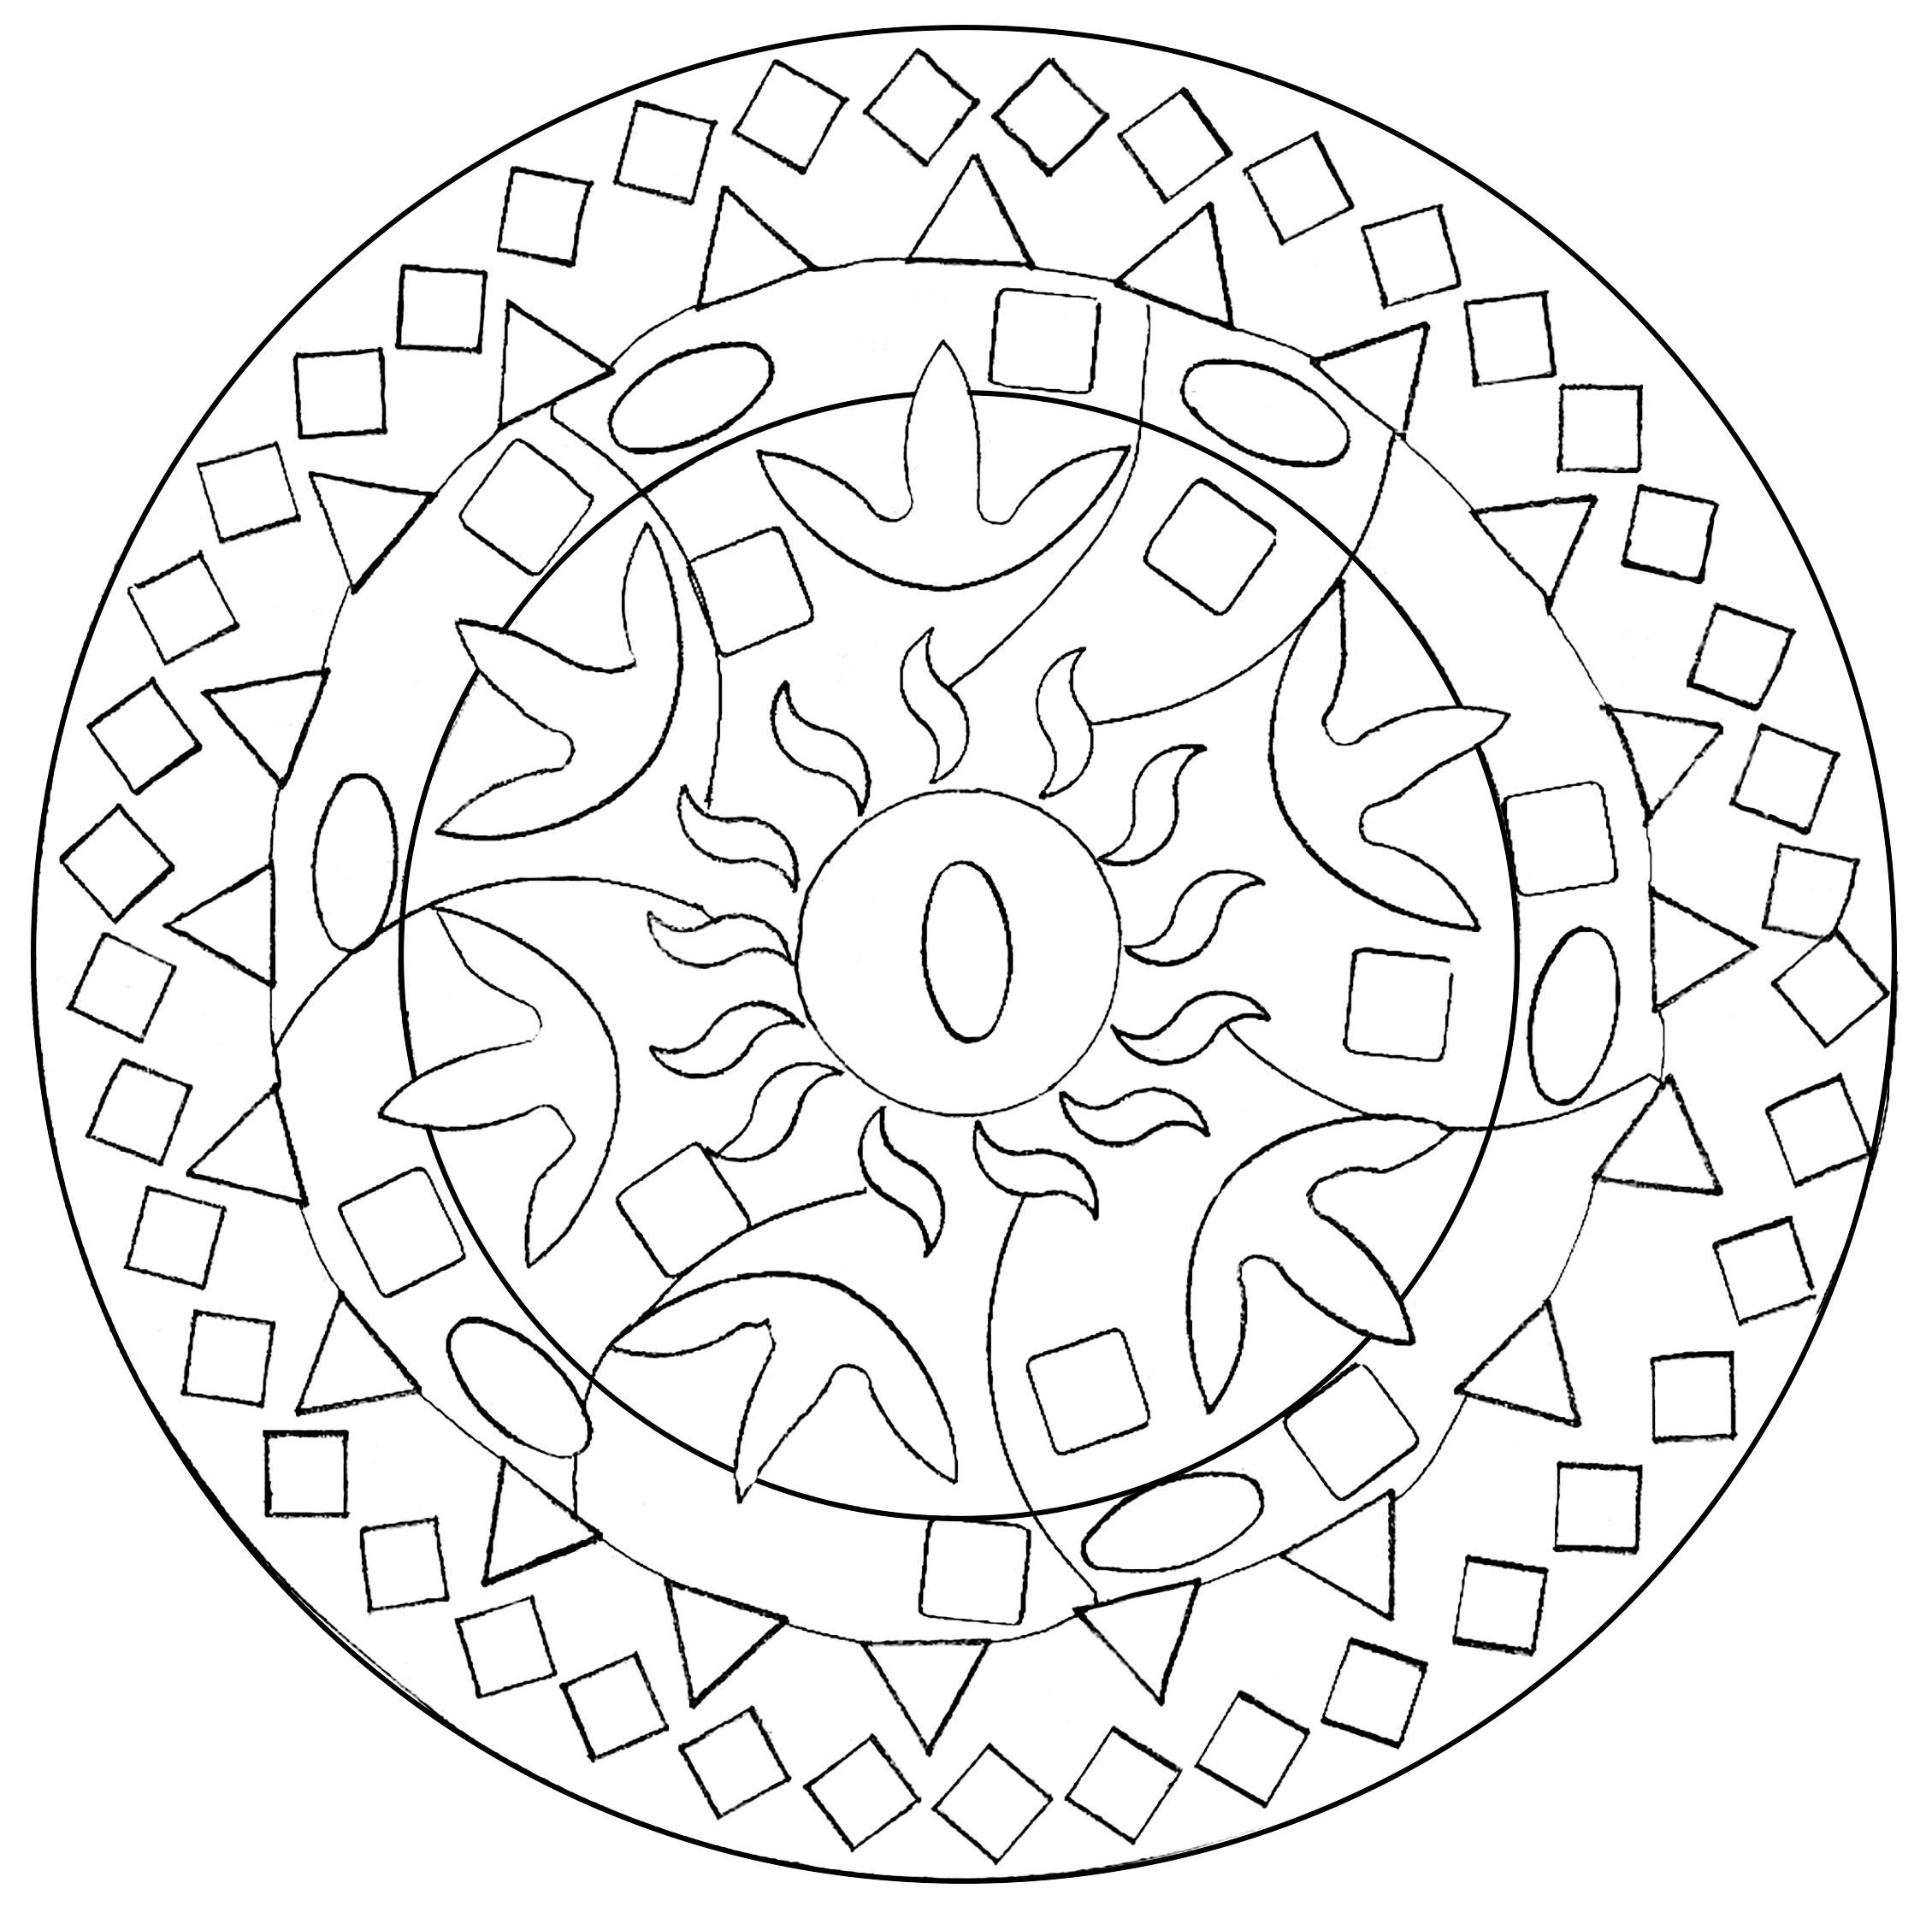 Mandalas coloring page to print and color for free